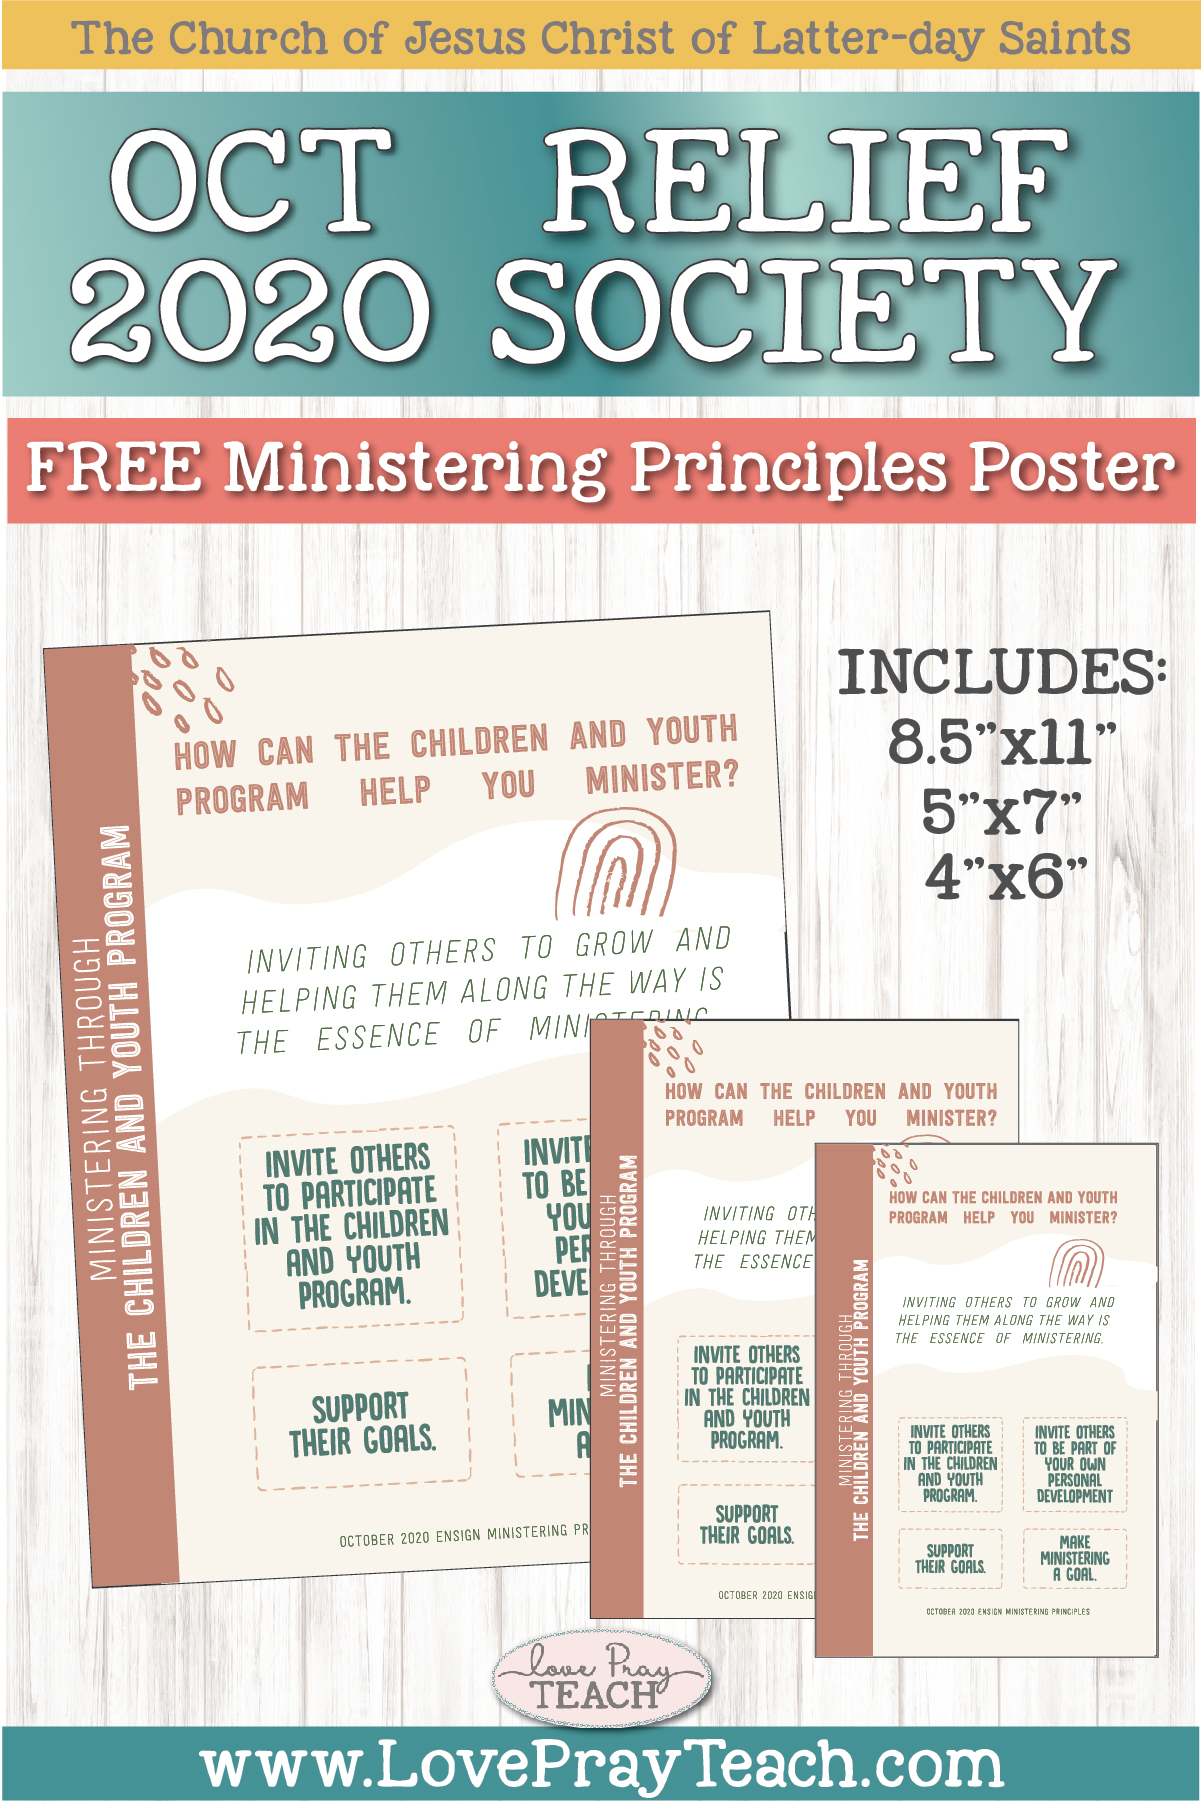 October 2020 Free Ministering Principles poster and handouts www.LovePrayTeach.com